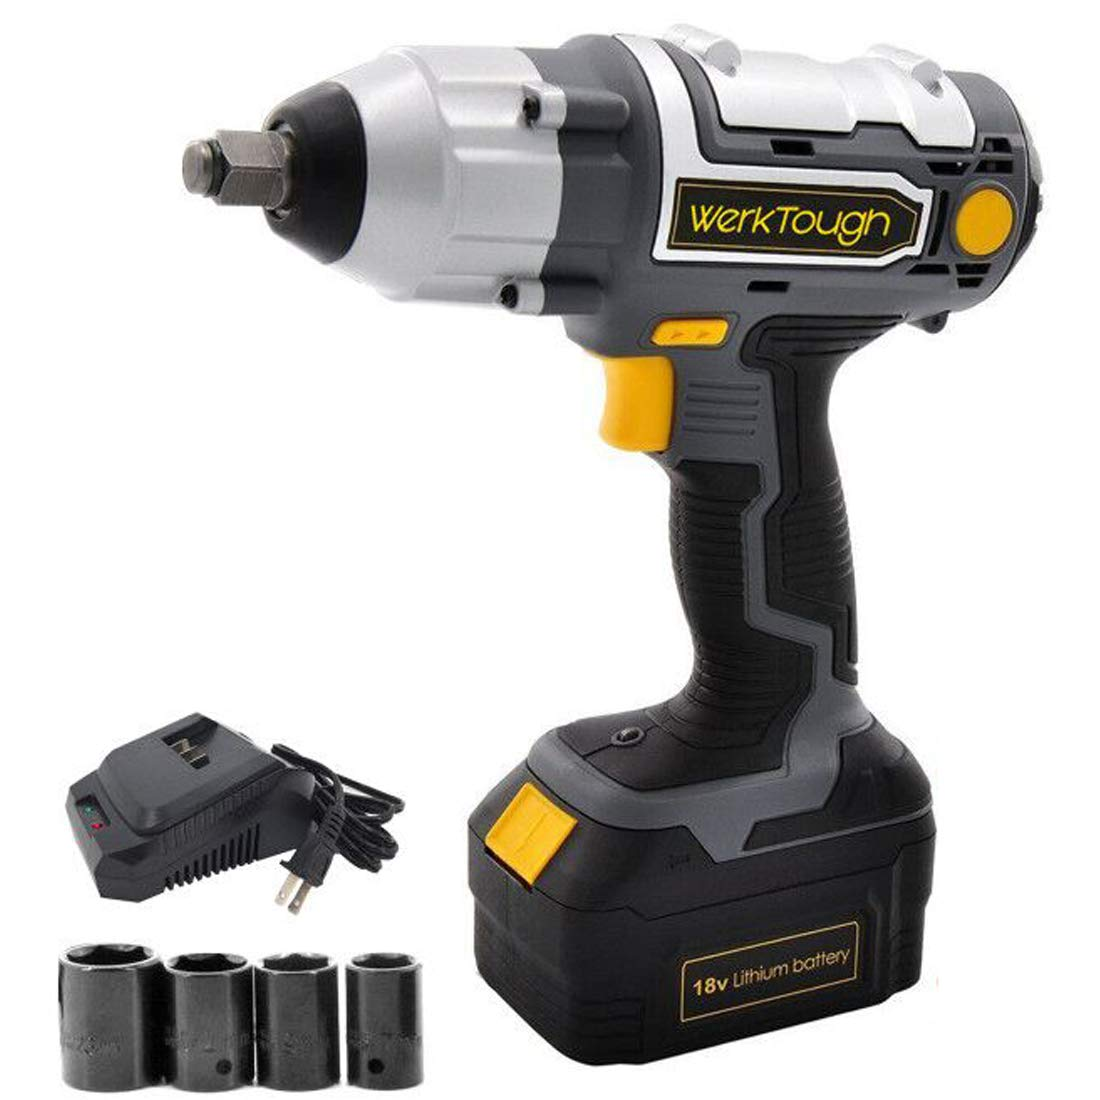 Werktough 18 20V IW03 Cordless Impact Wrench Lion battery 1 2 Electric Impact Wrench Battery Charger Included